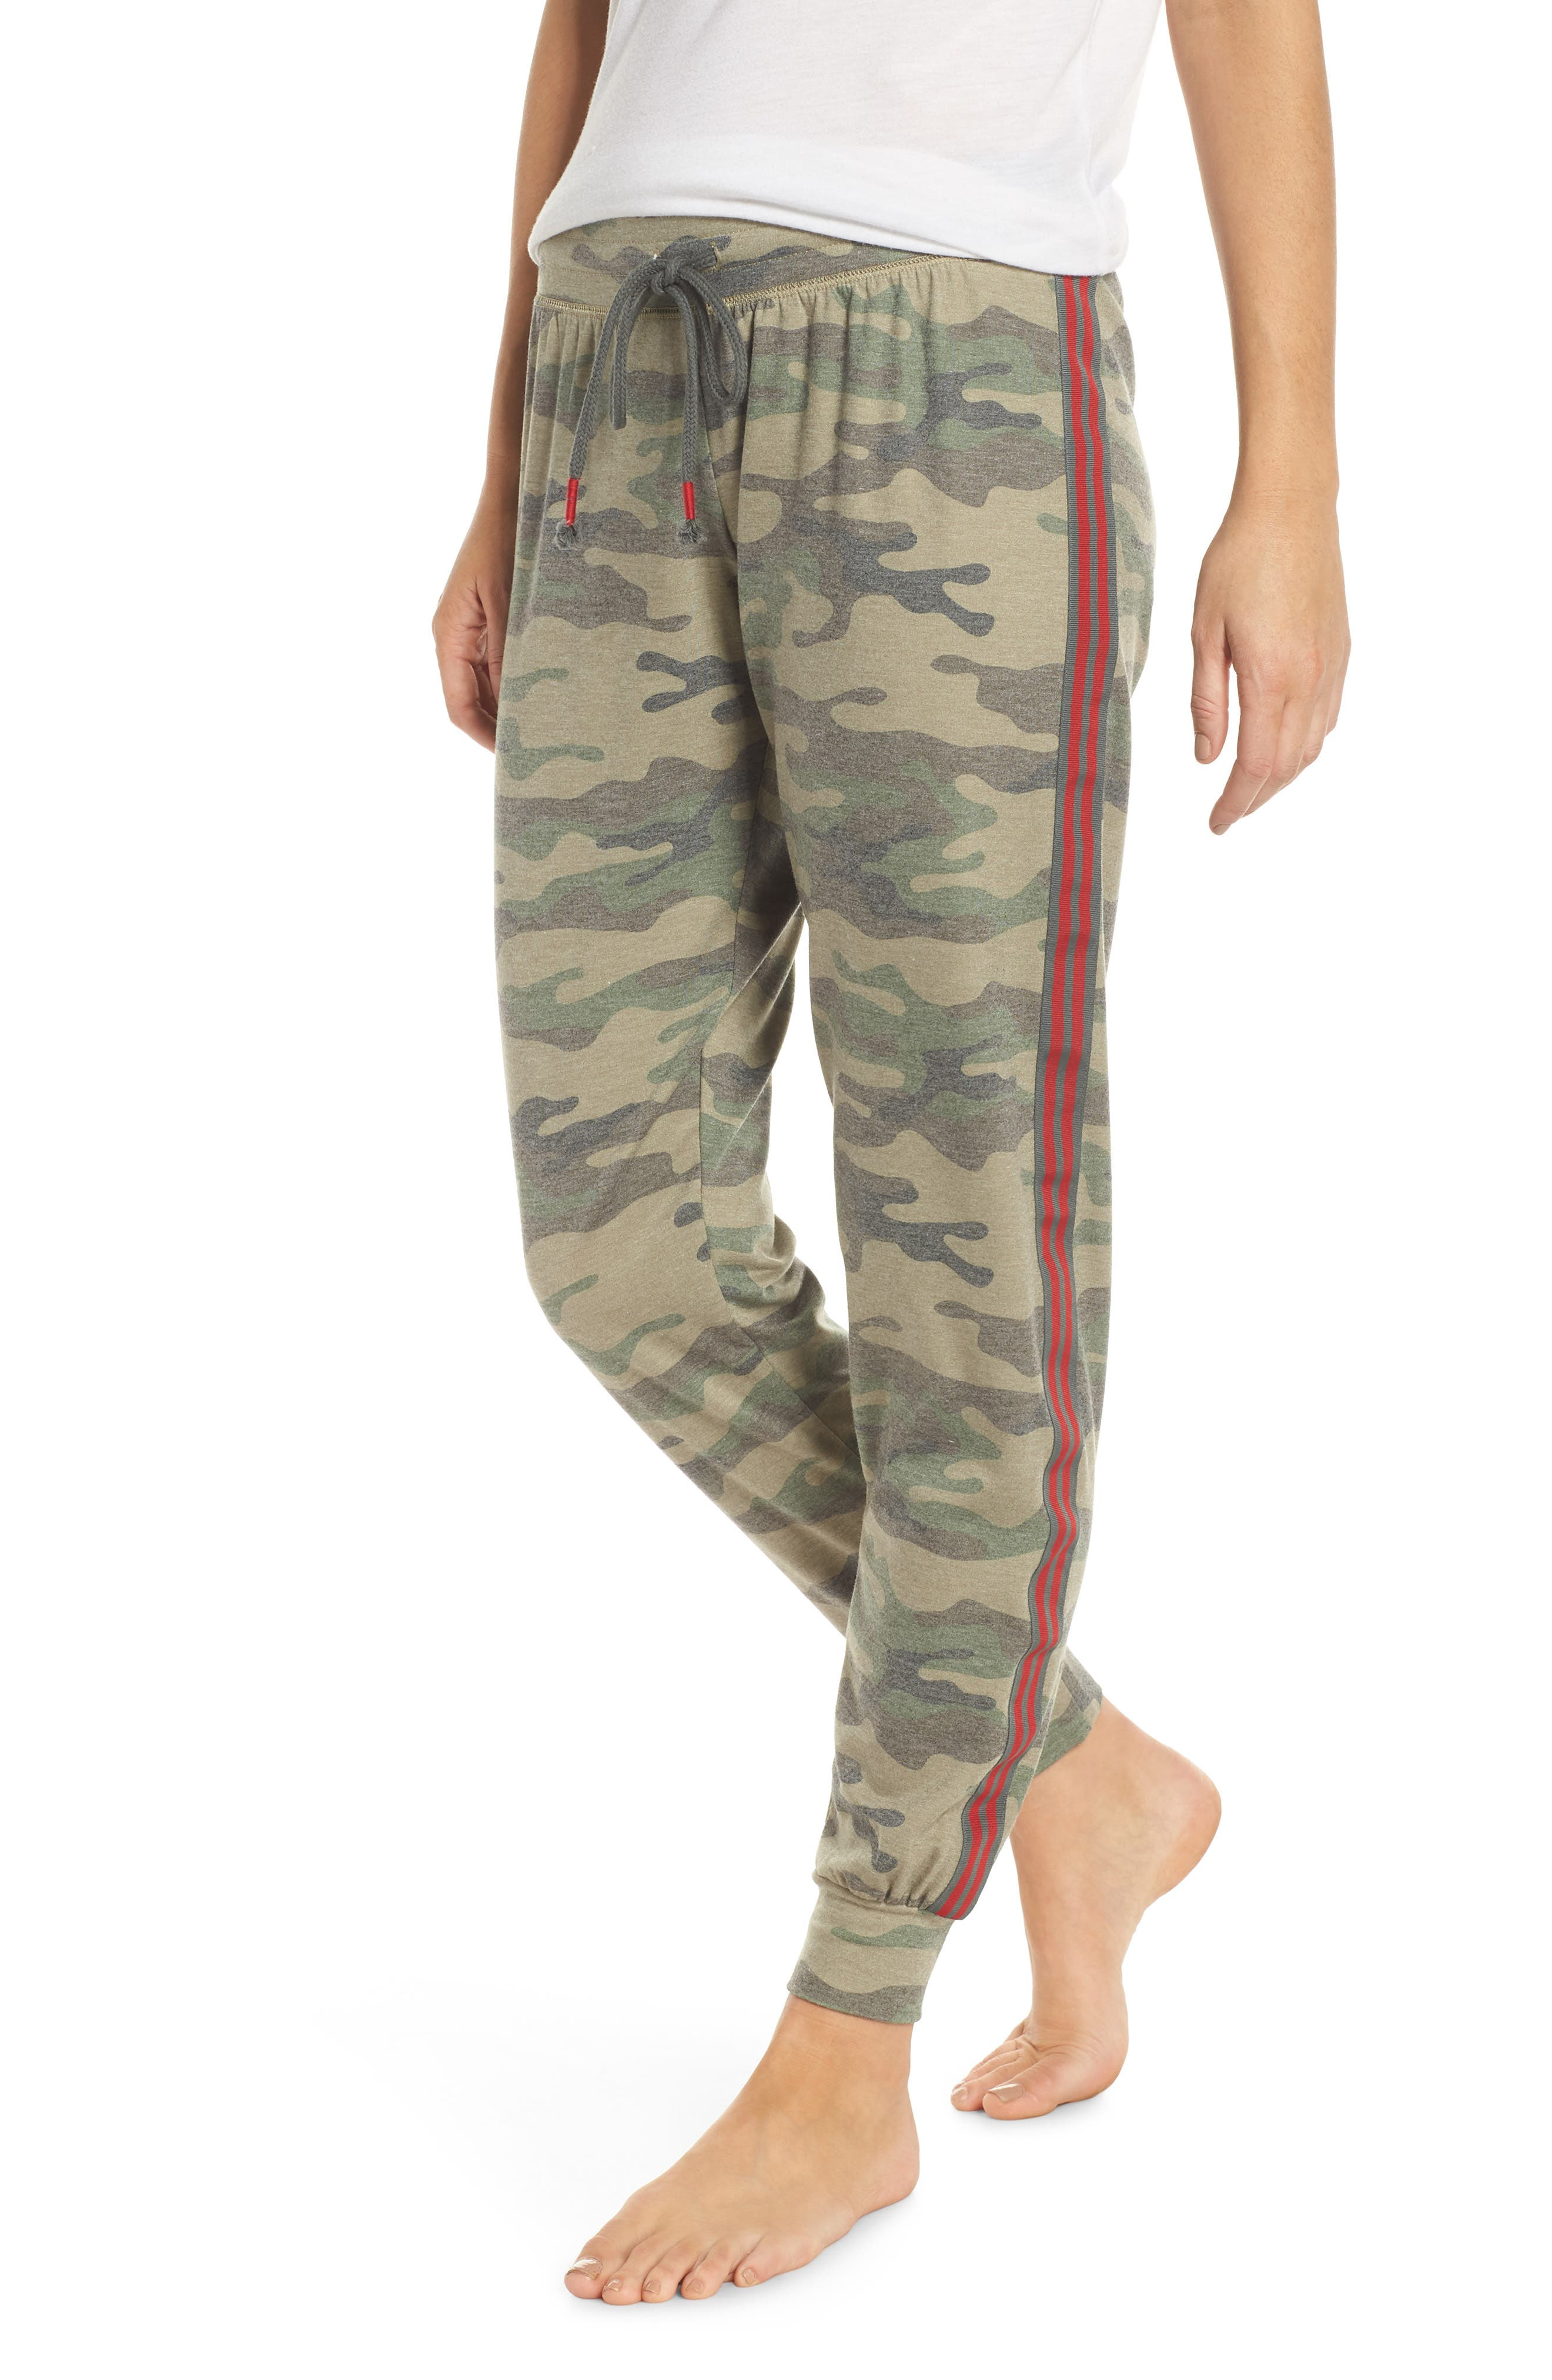 PJ SALVAGE Sweatpants, Main, color, 318